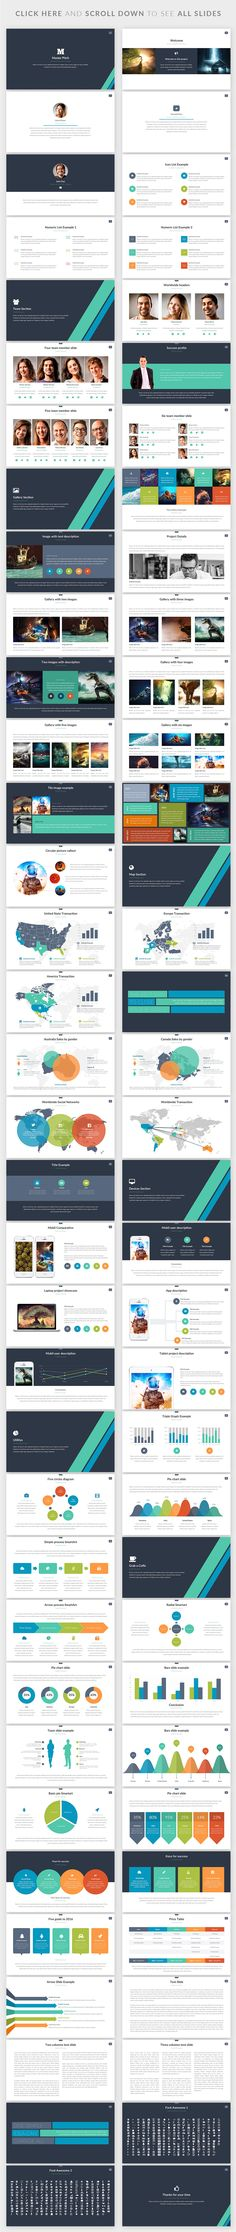 Master Pitch |Powerpoint Template by Zacomic Studios on Creative Market